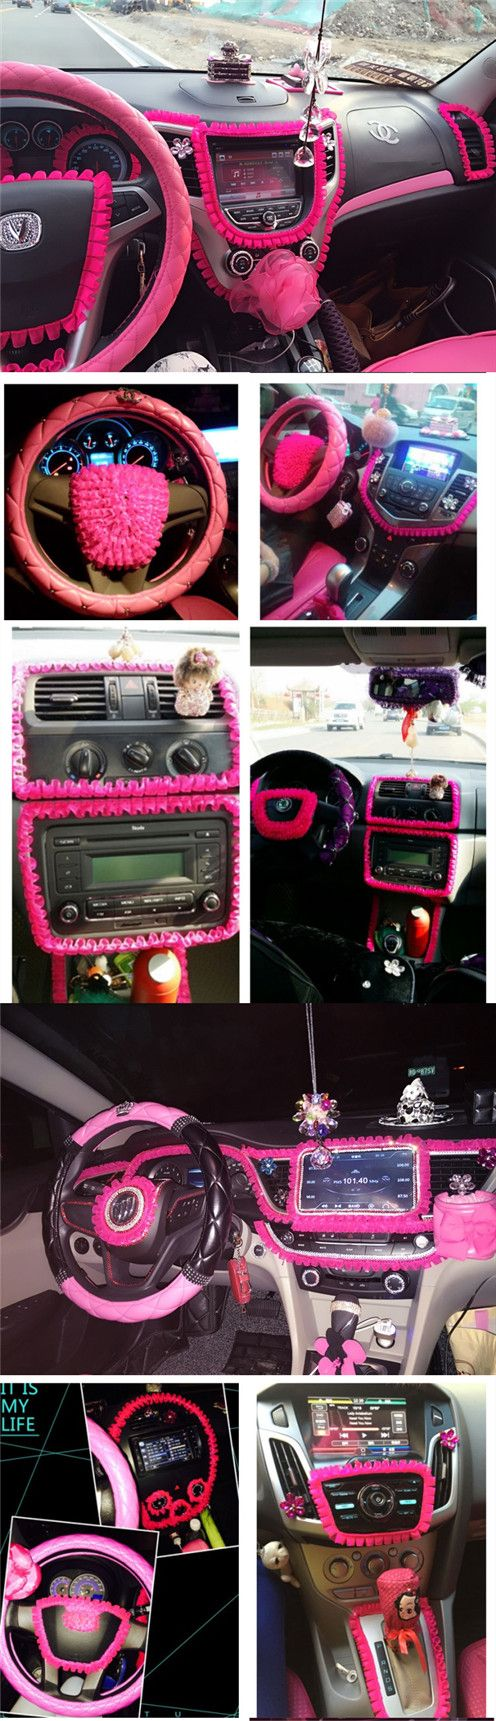 Car diy ruffle lace fringe for interior decorations hot - How to decorate your car interior ...